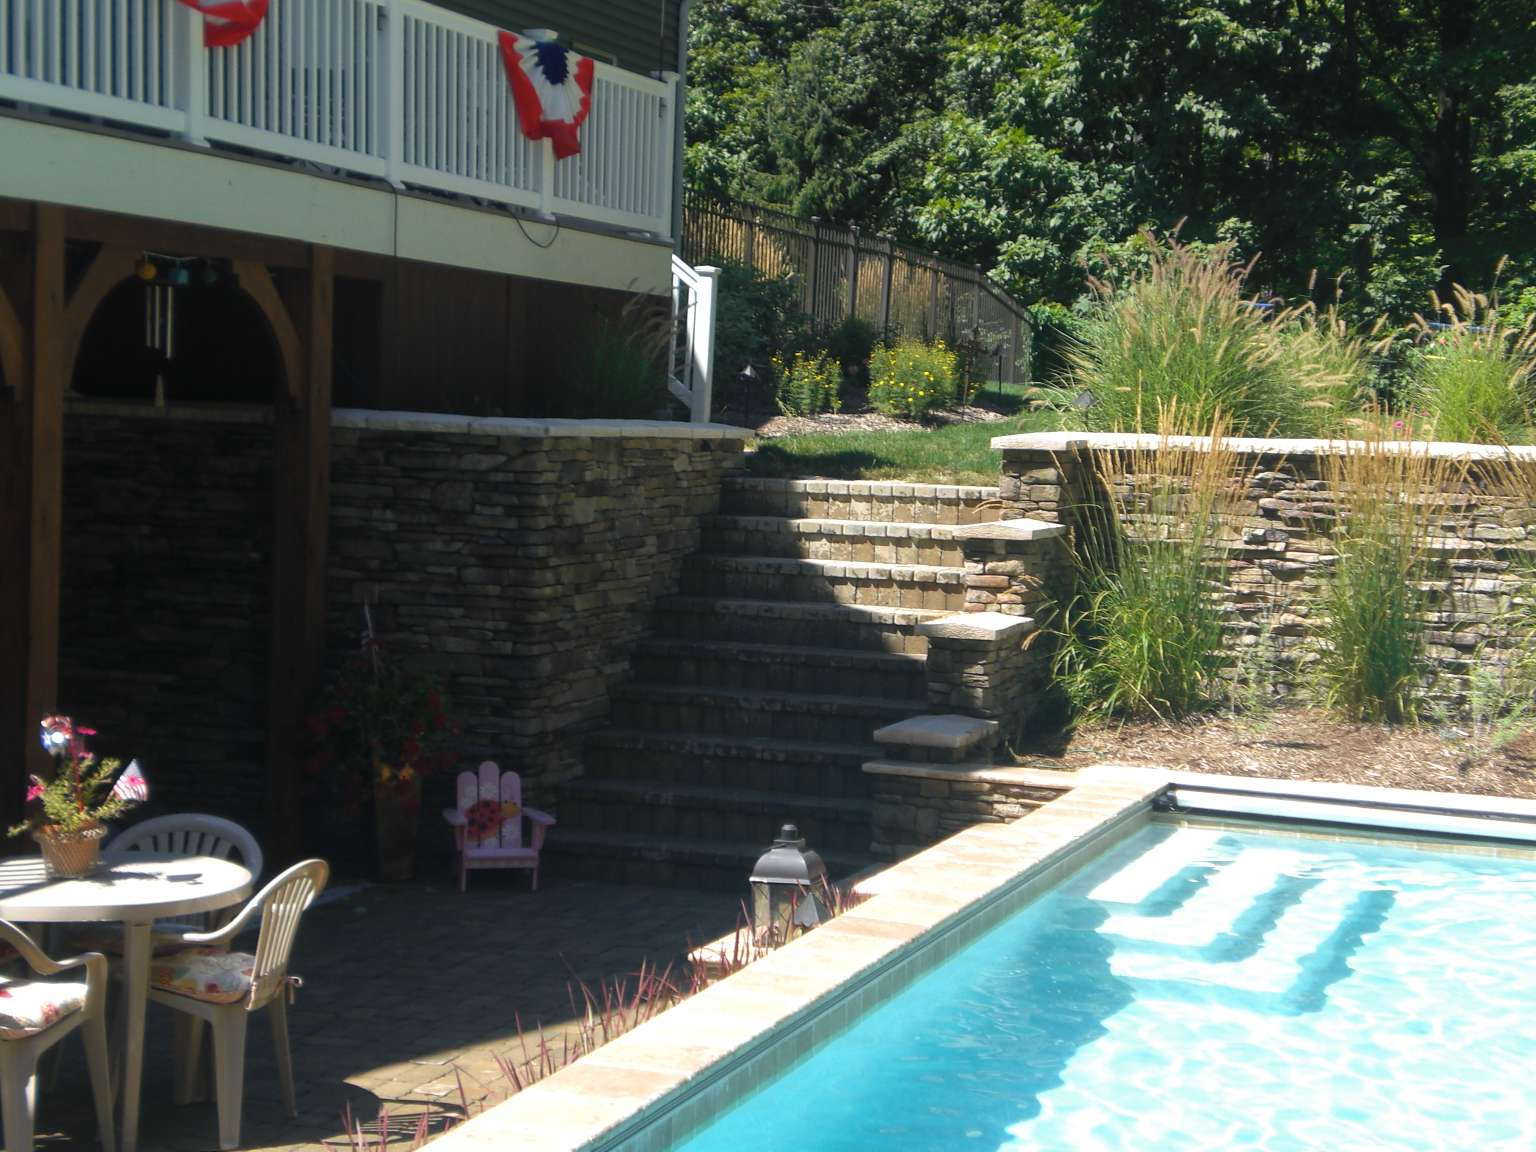 Grand Rapids Raised Pool With Waterfalls Fireplace